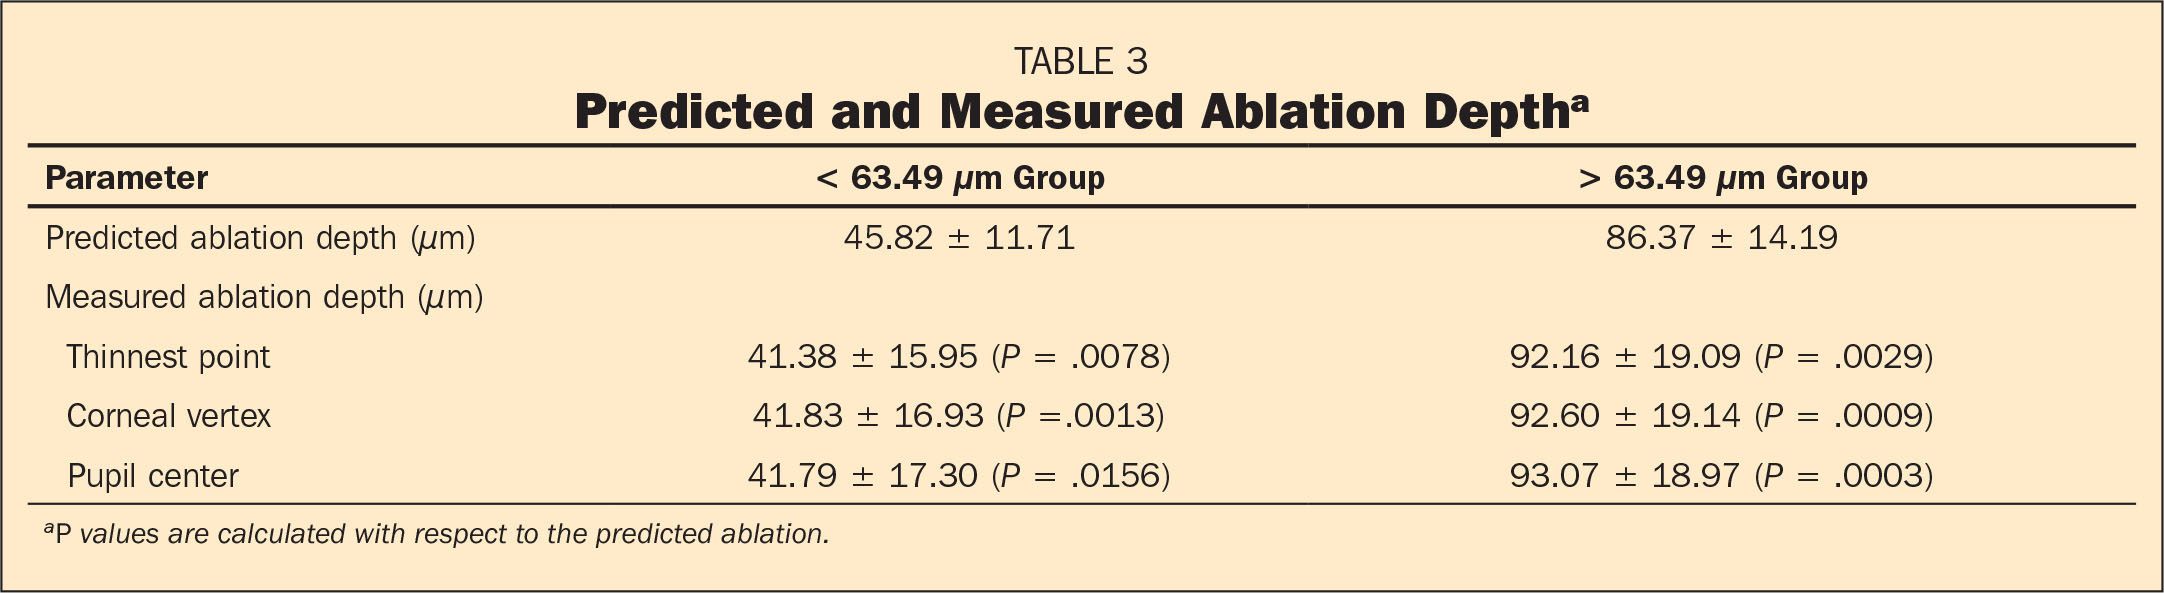 Predicted and Measured Ablation Deptha